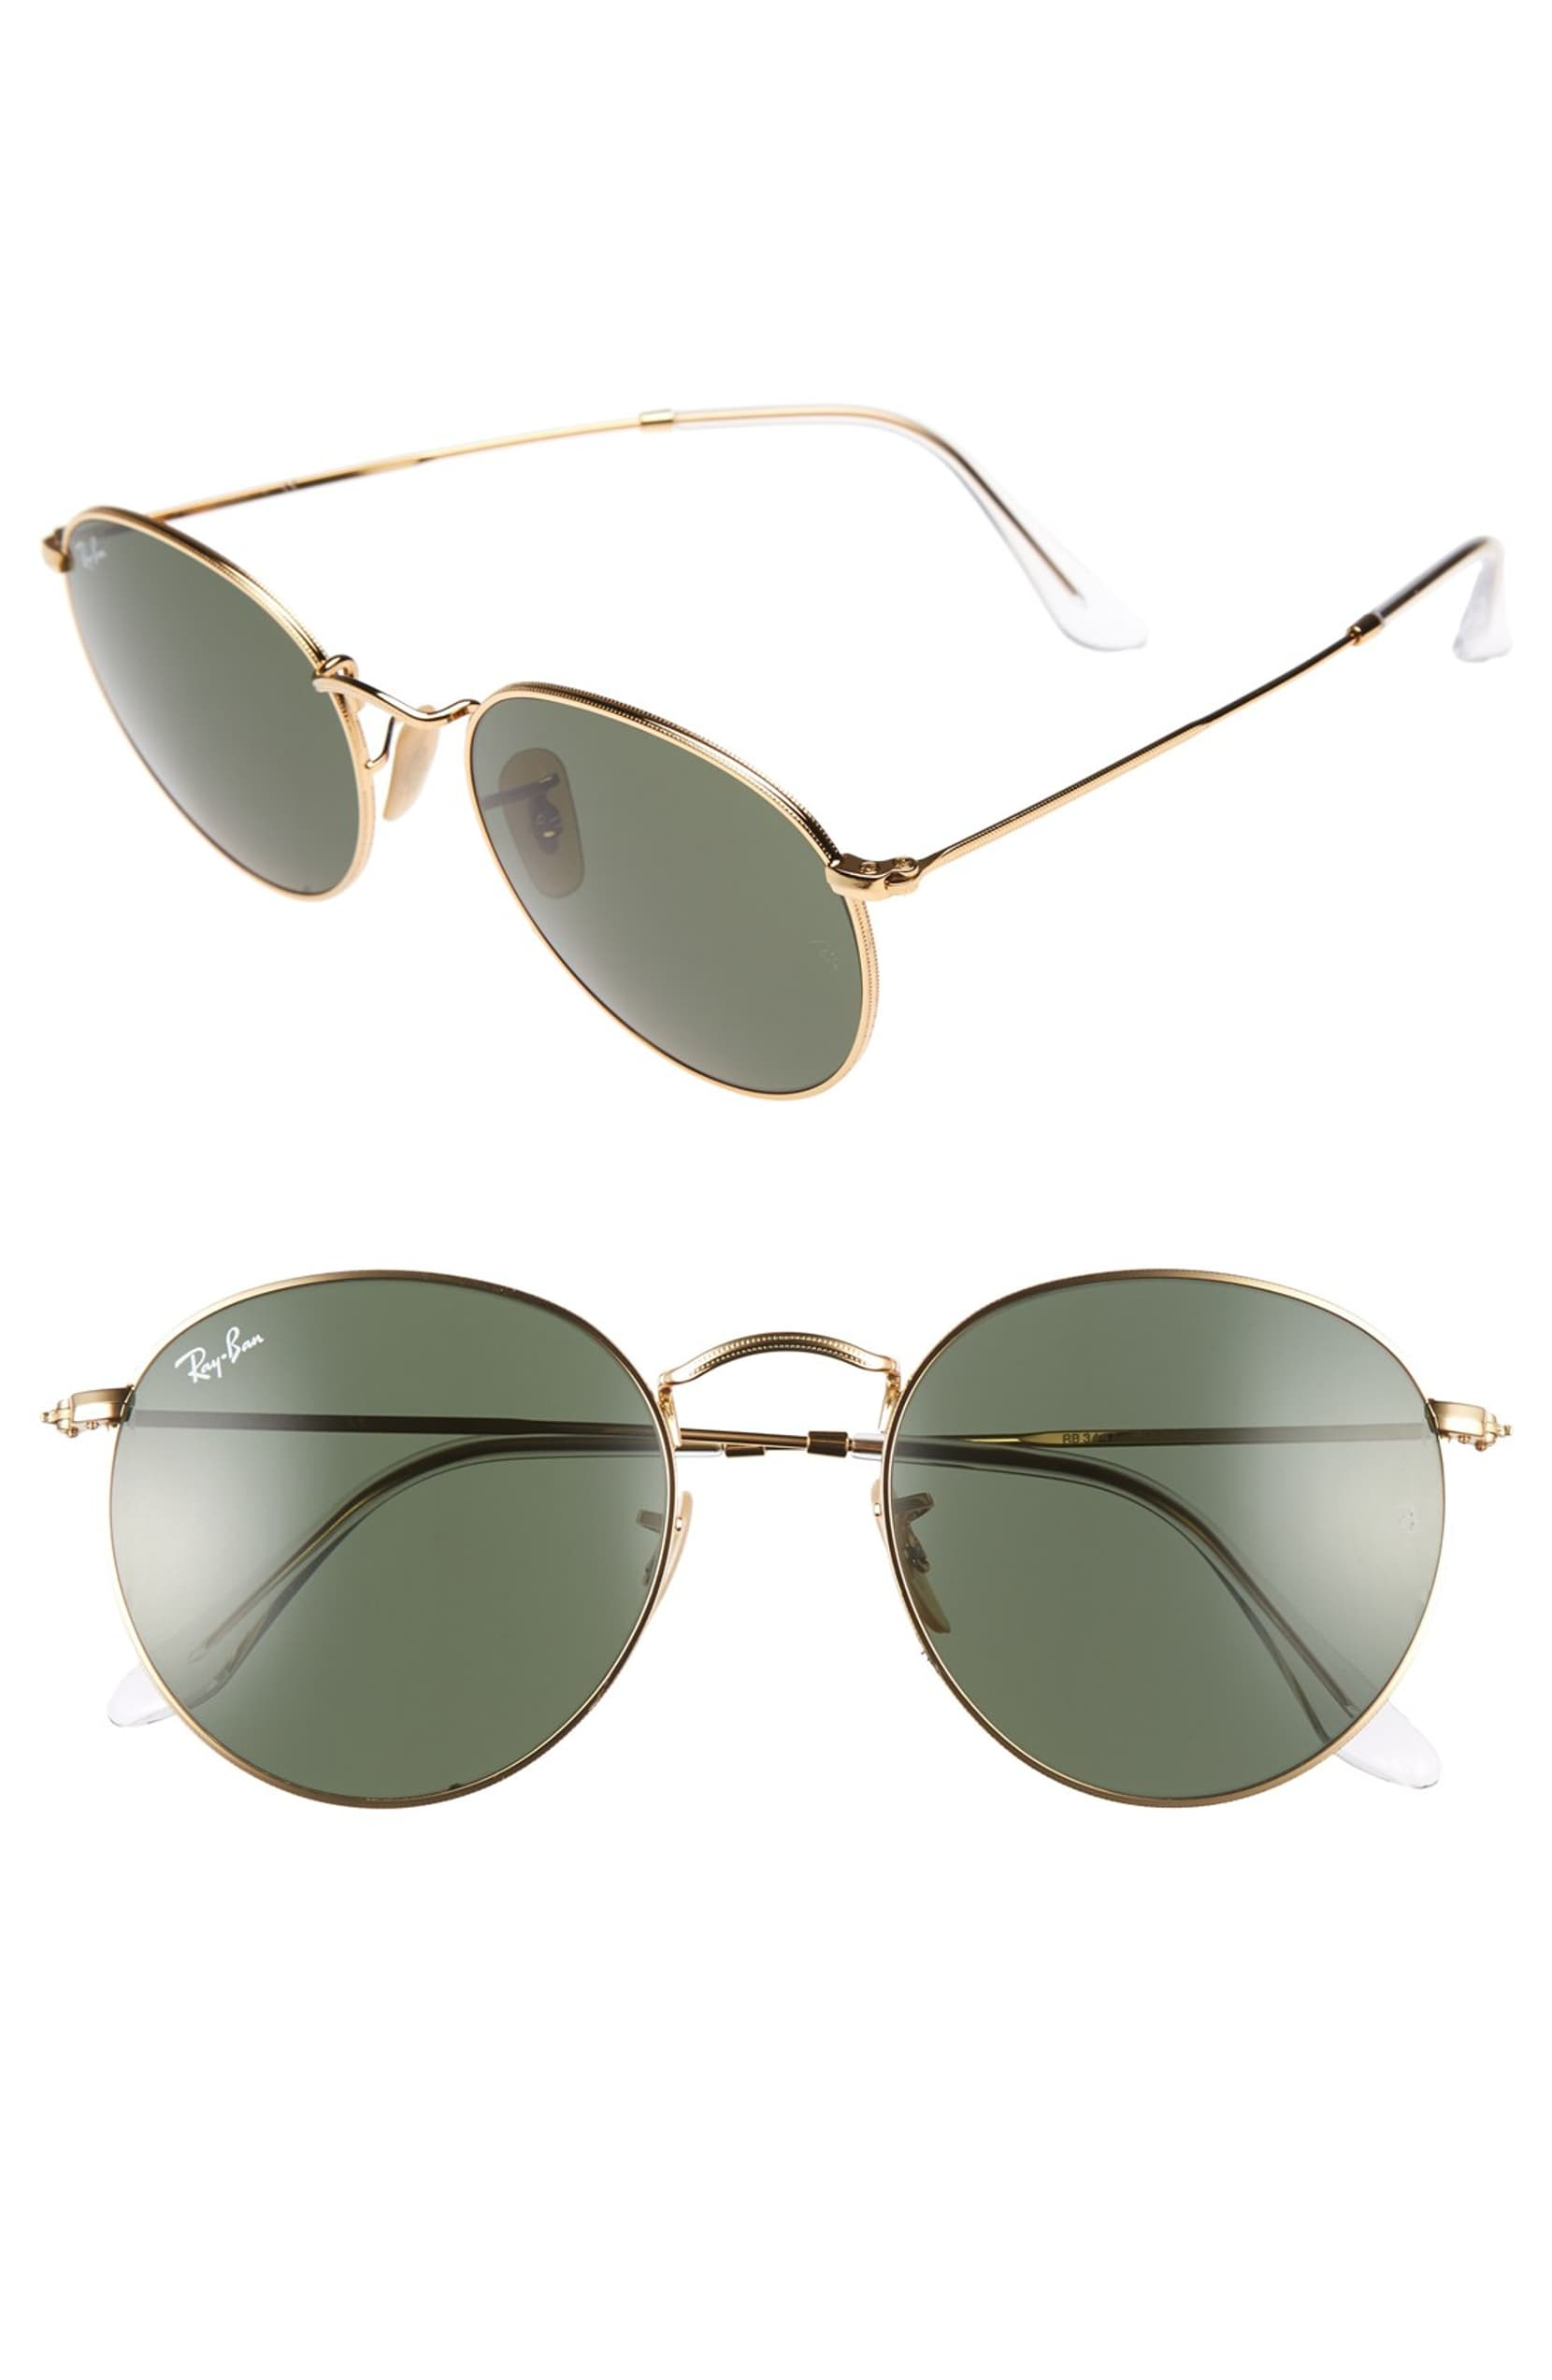 Rb3447 Round Metal G-15 Sunglasses by Ray-Ban, available on nordstrom.com for $153 Selena Gomez Sunglasses Exact Product